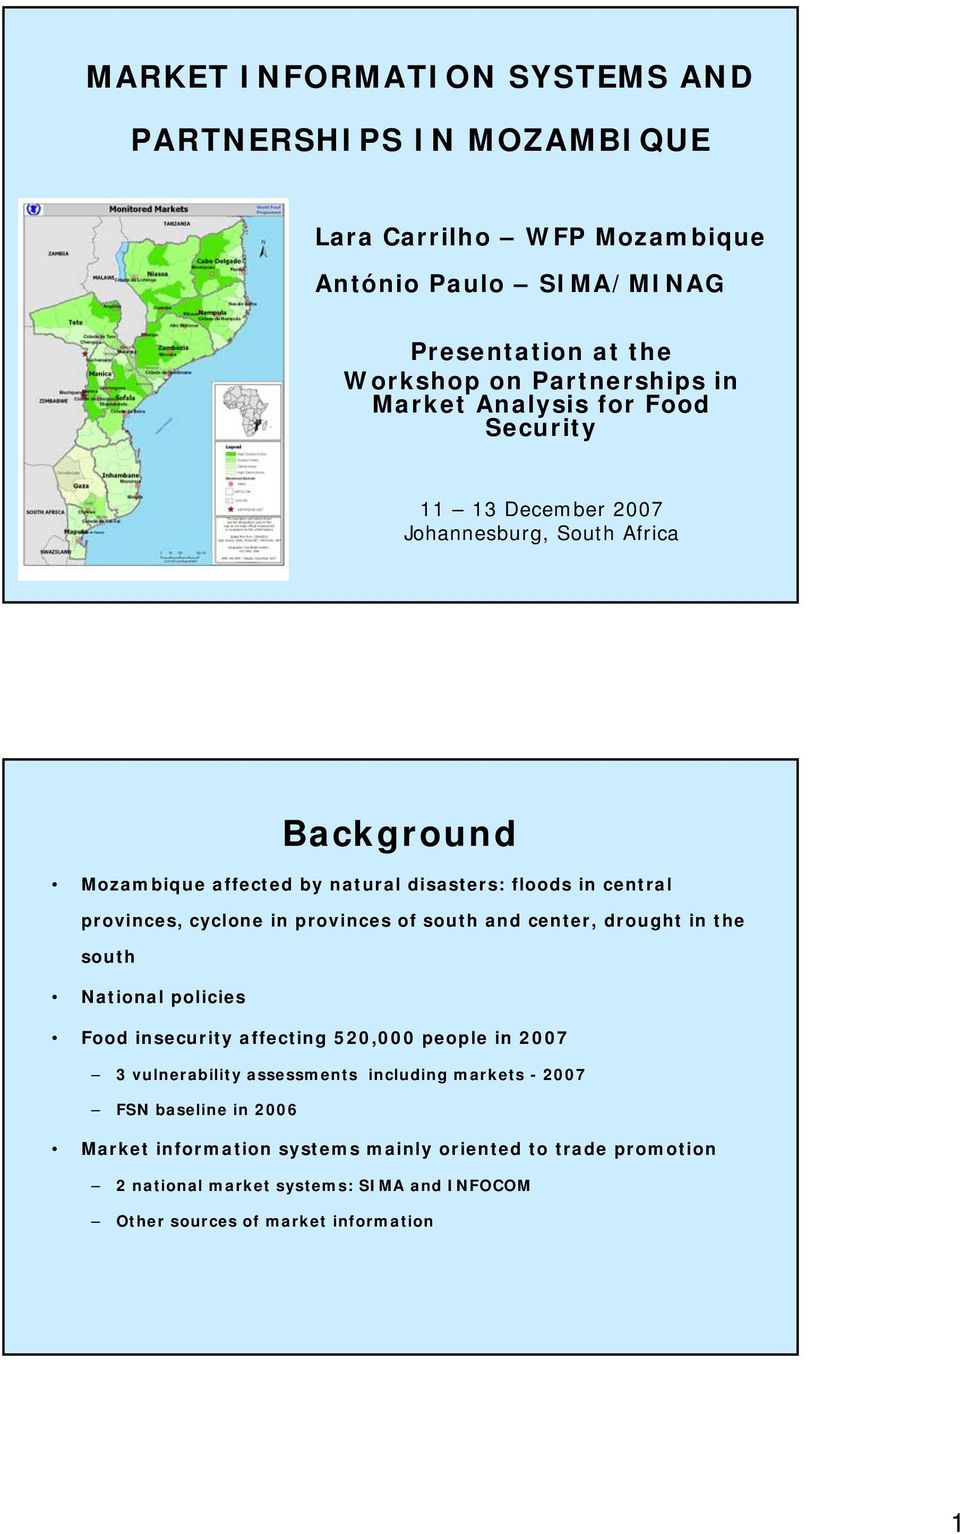 provinces of south and center, drought in the south National policies Food insecurity affecting 520,000 people in 2007 3 vulnerability assessments including markets -